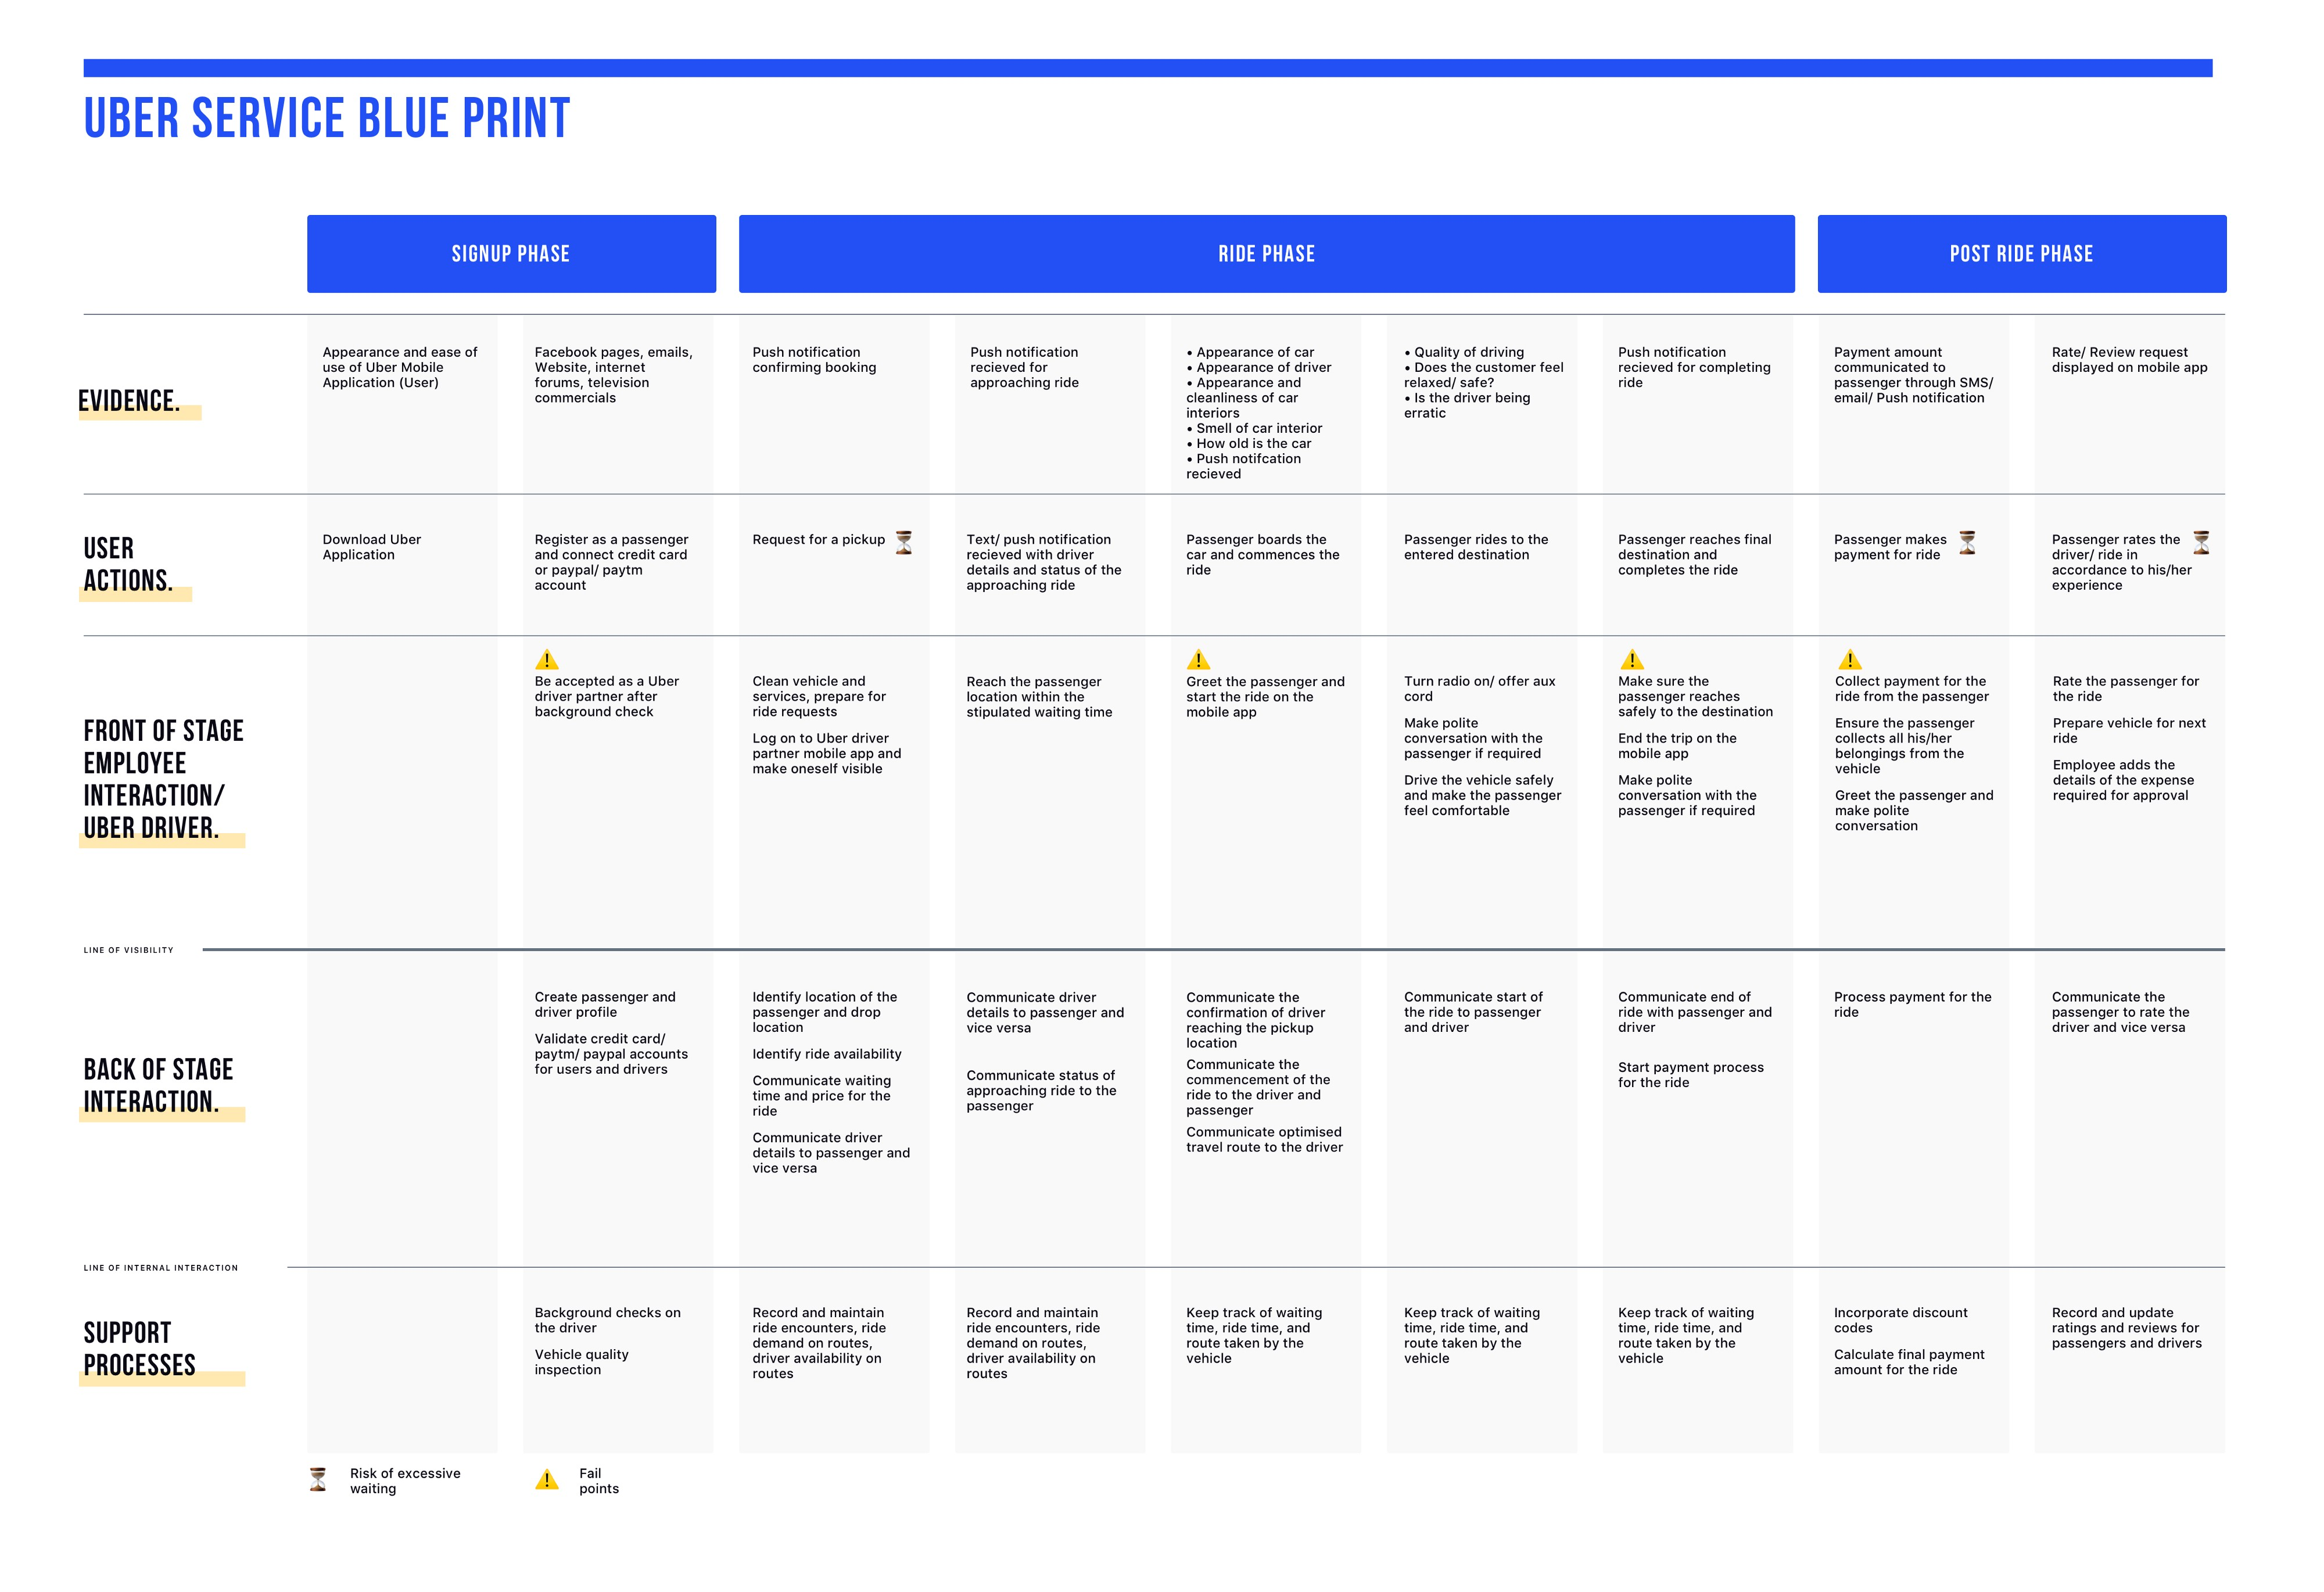 feature image of 'Uber Service Blueprint' case study